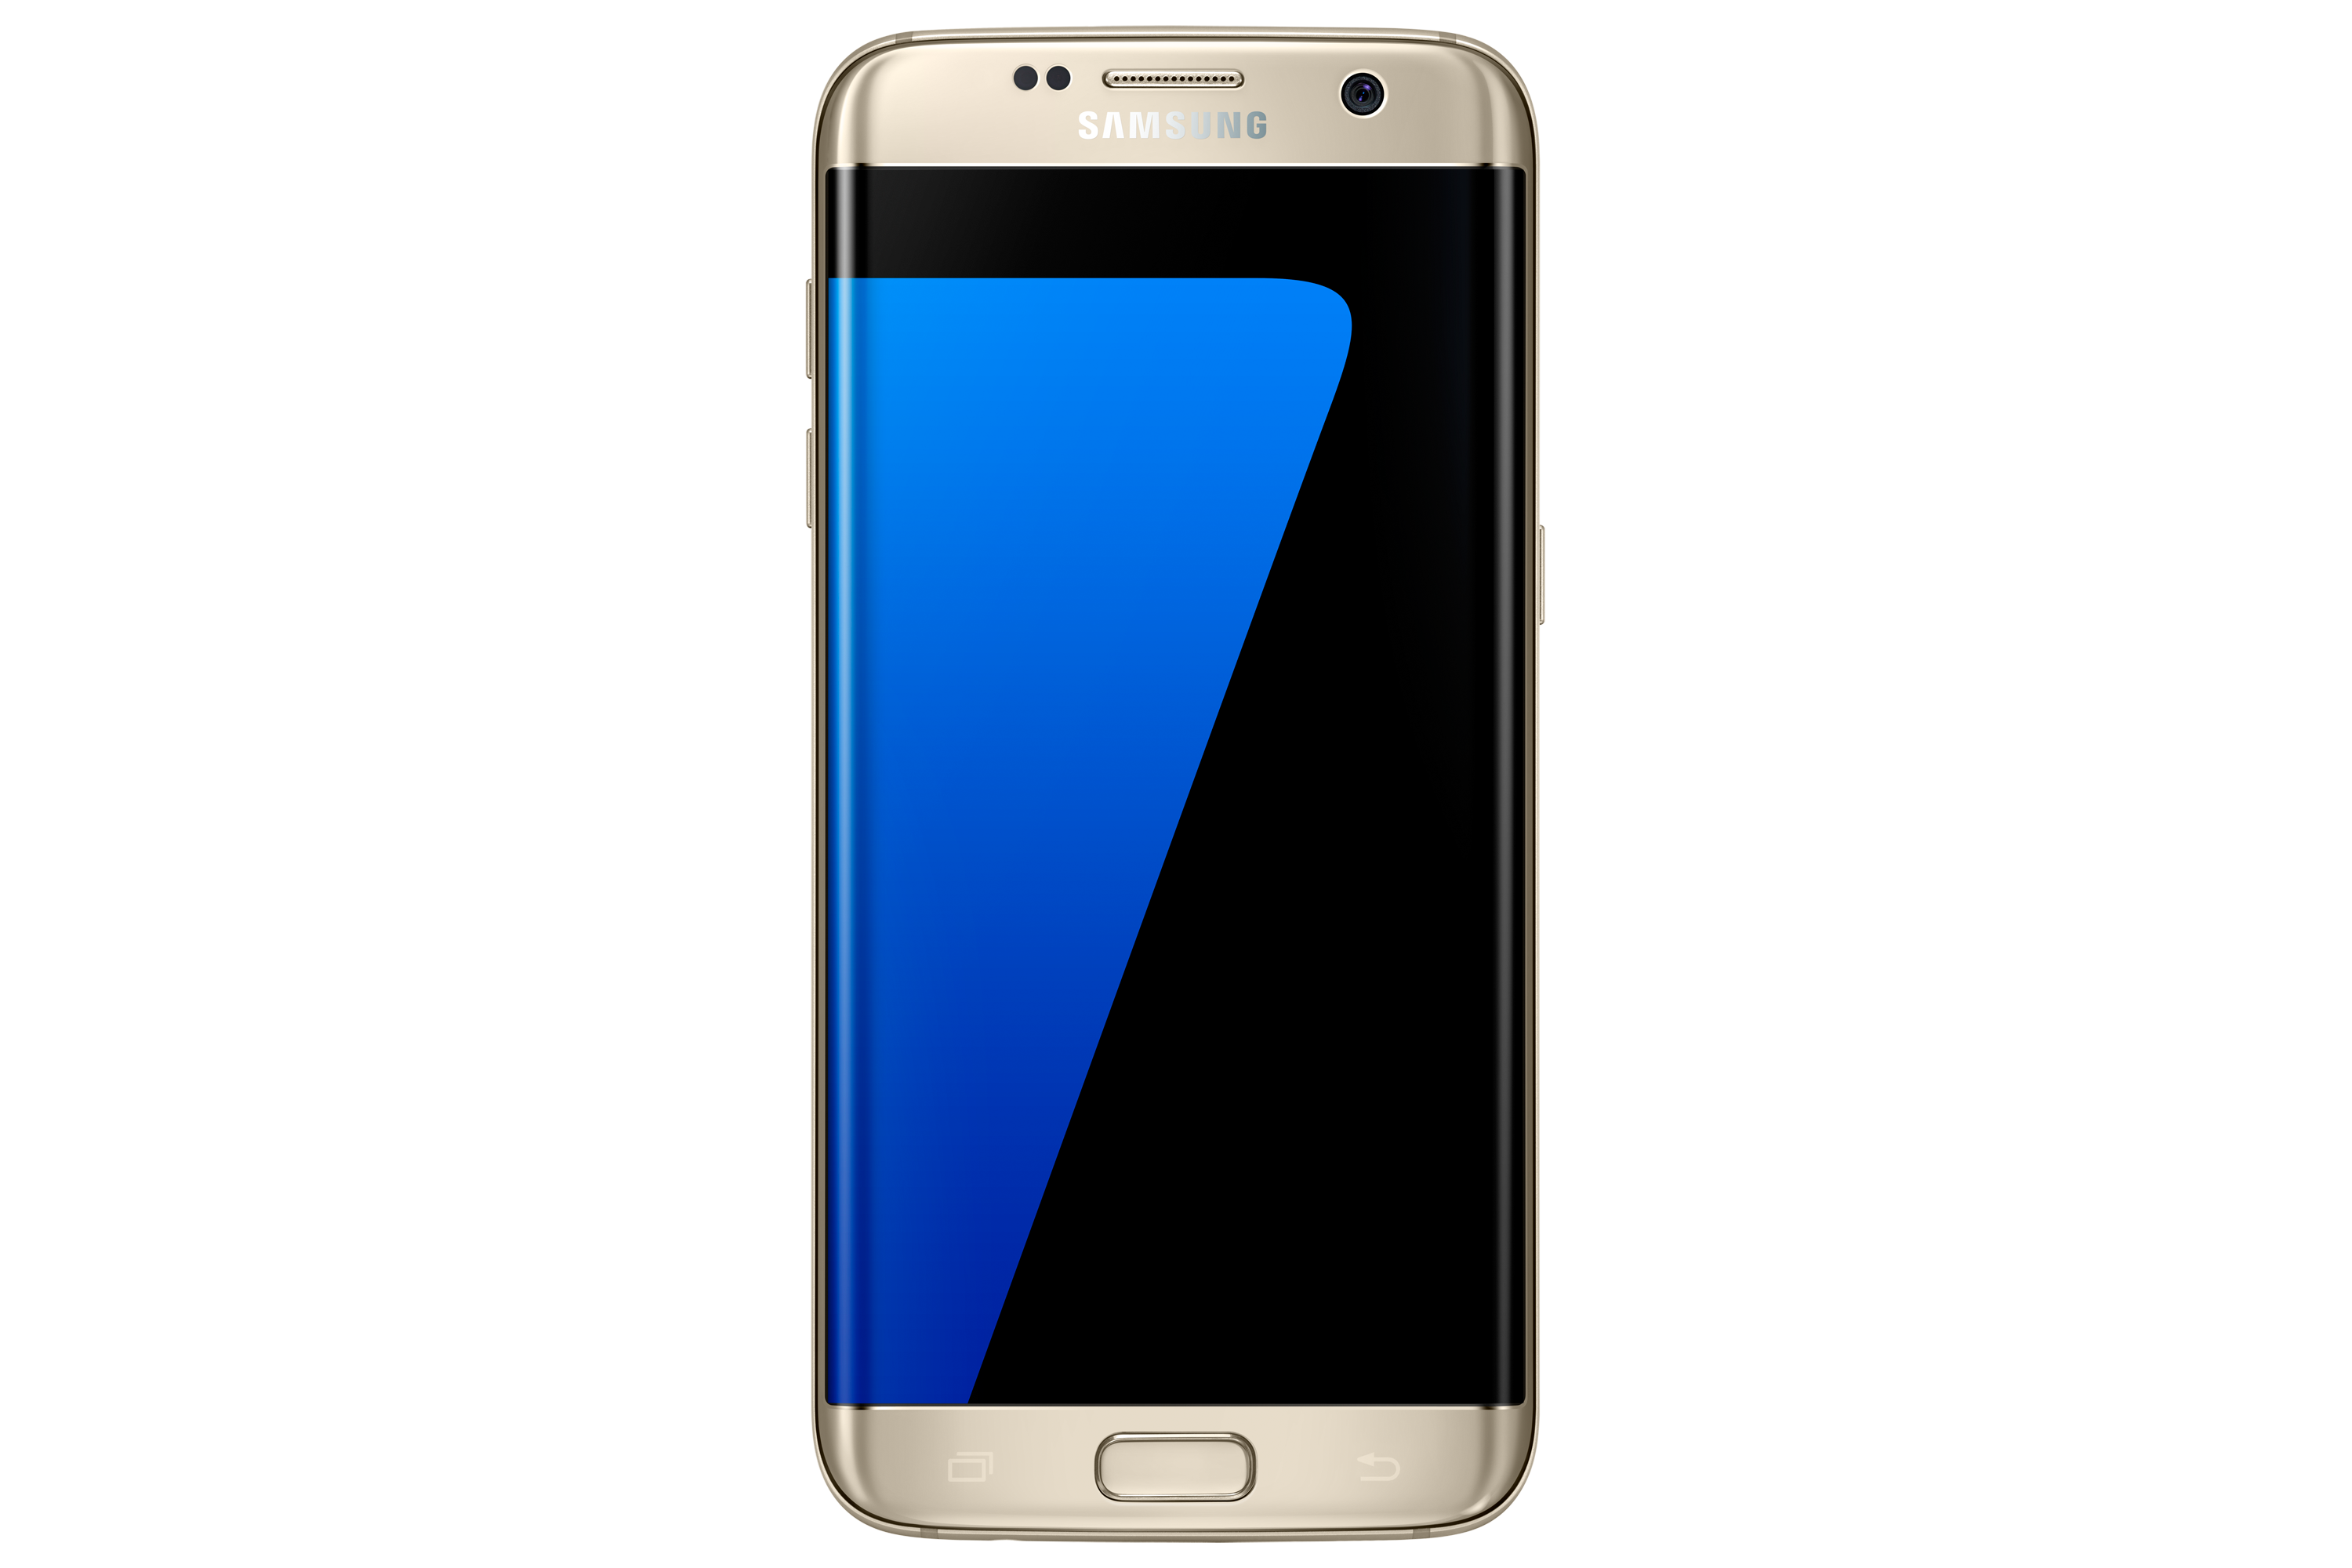 Samsung Galaxy S7 Edge SM-G935 32GB, Black